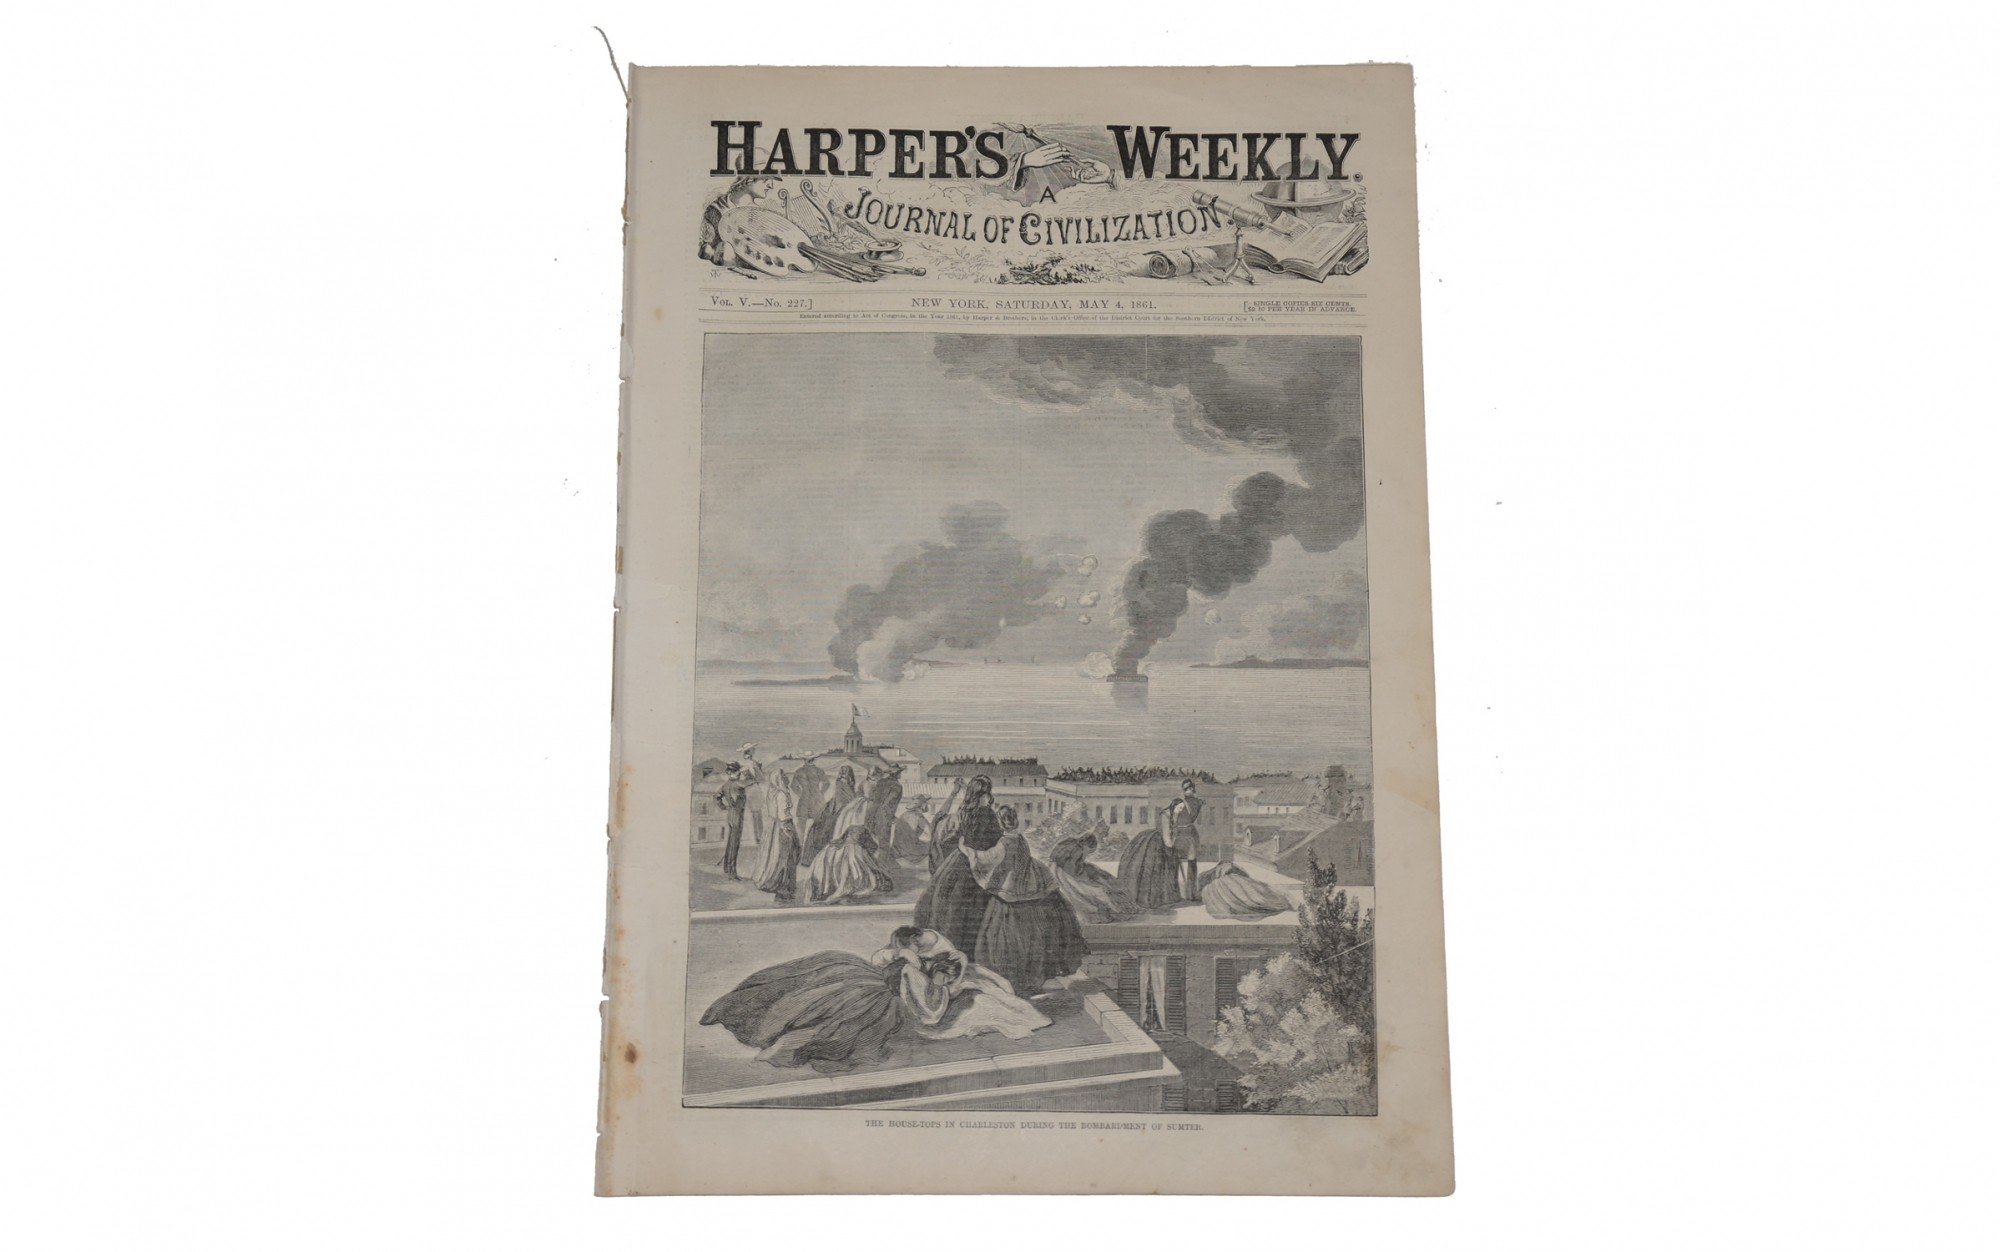 HARPER'S WEEKLY DATED MAY 4, 1861